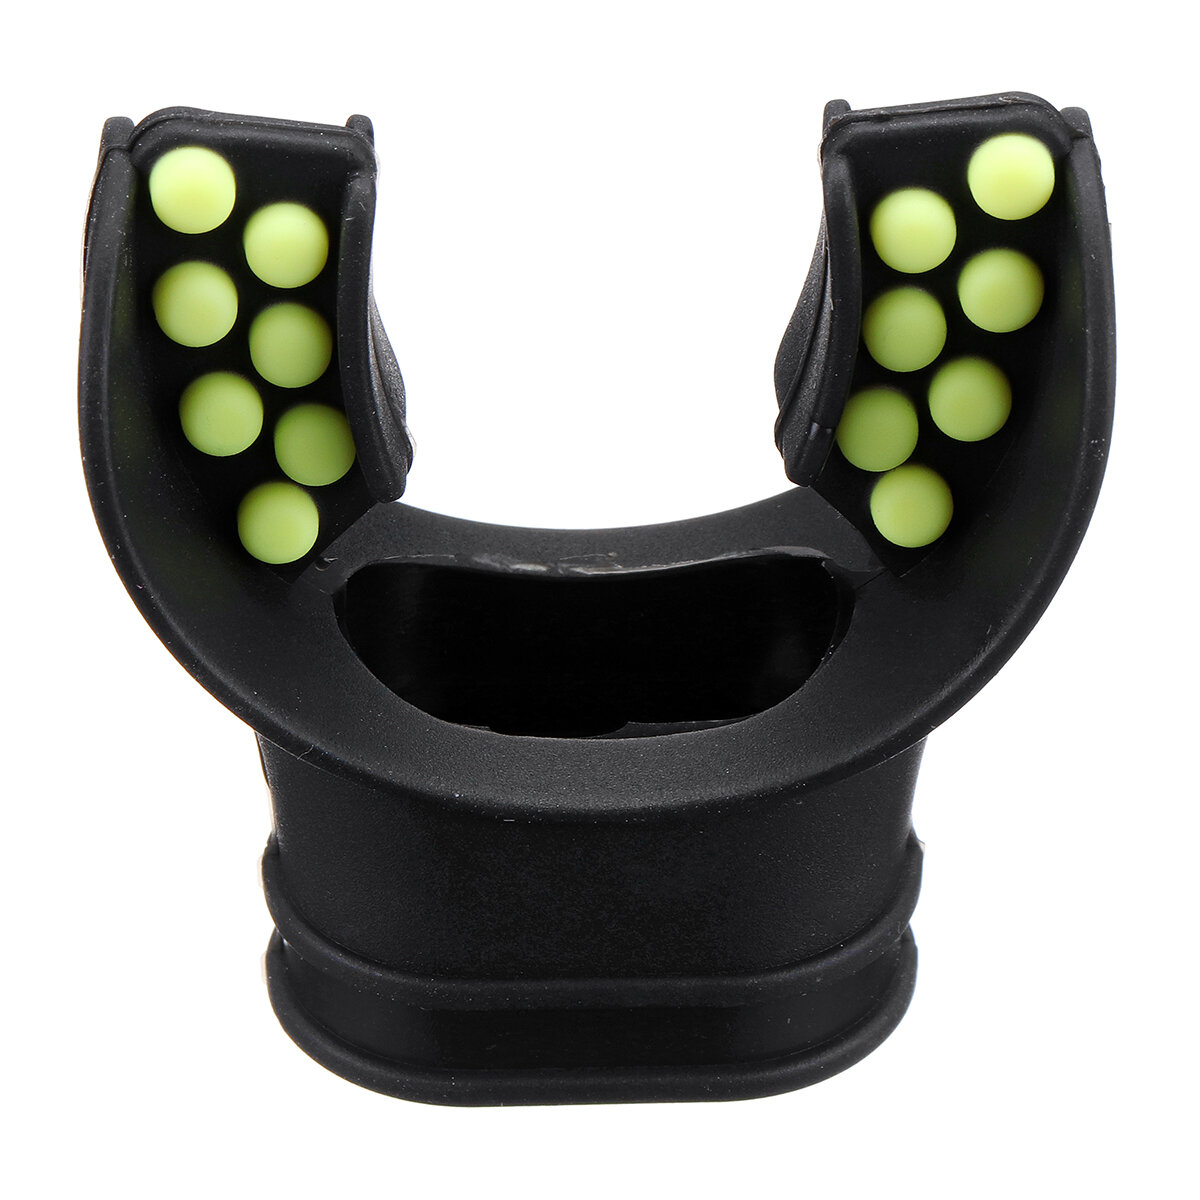 Mouthpiece Scuba Diving Silicone Color Tab Tie Replacement Regulator Snorkel for Breather Pipes